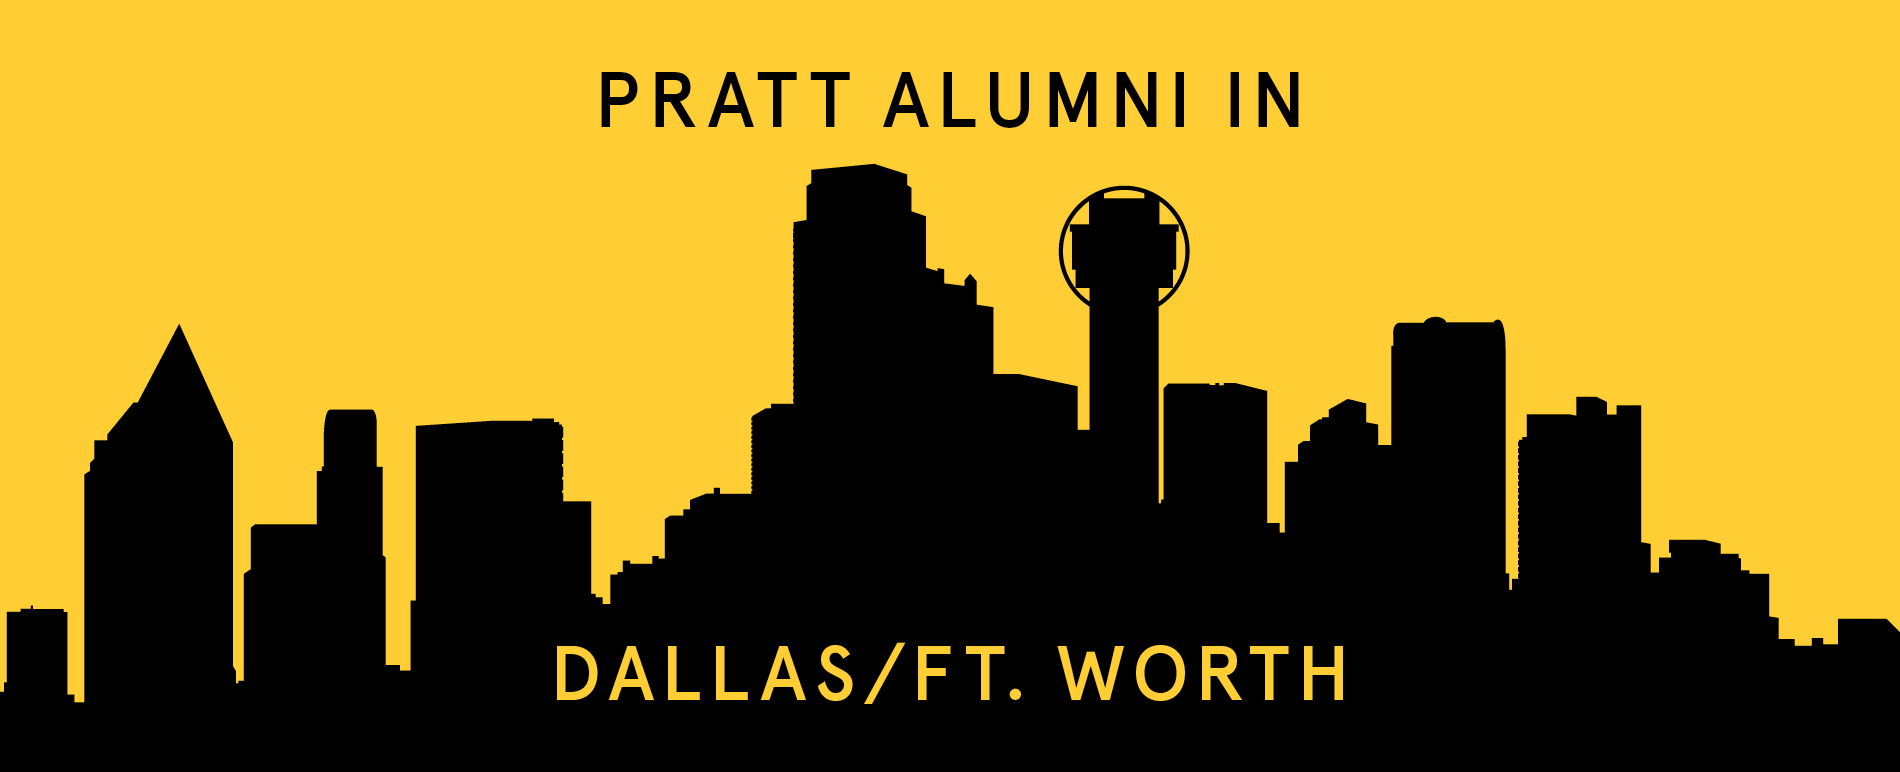 Dallas Pratt Alumni